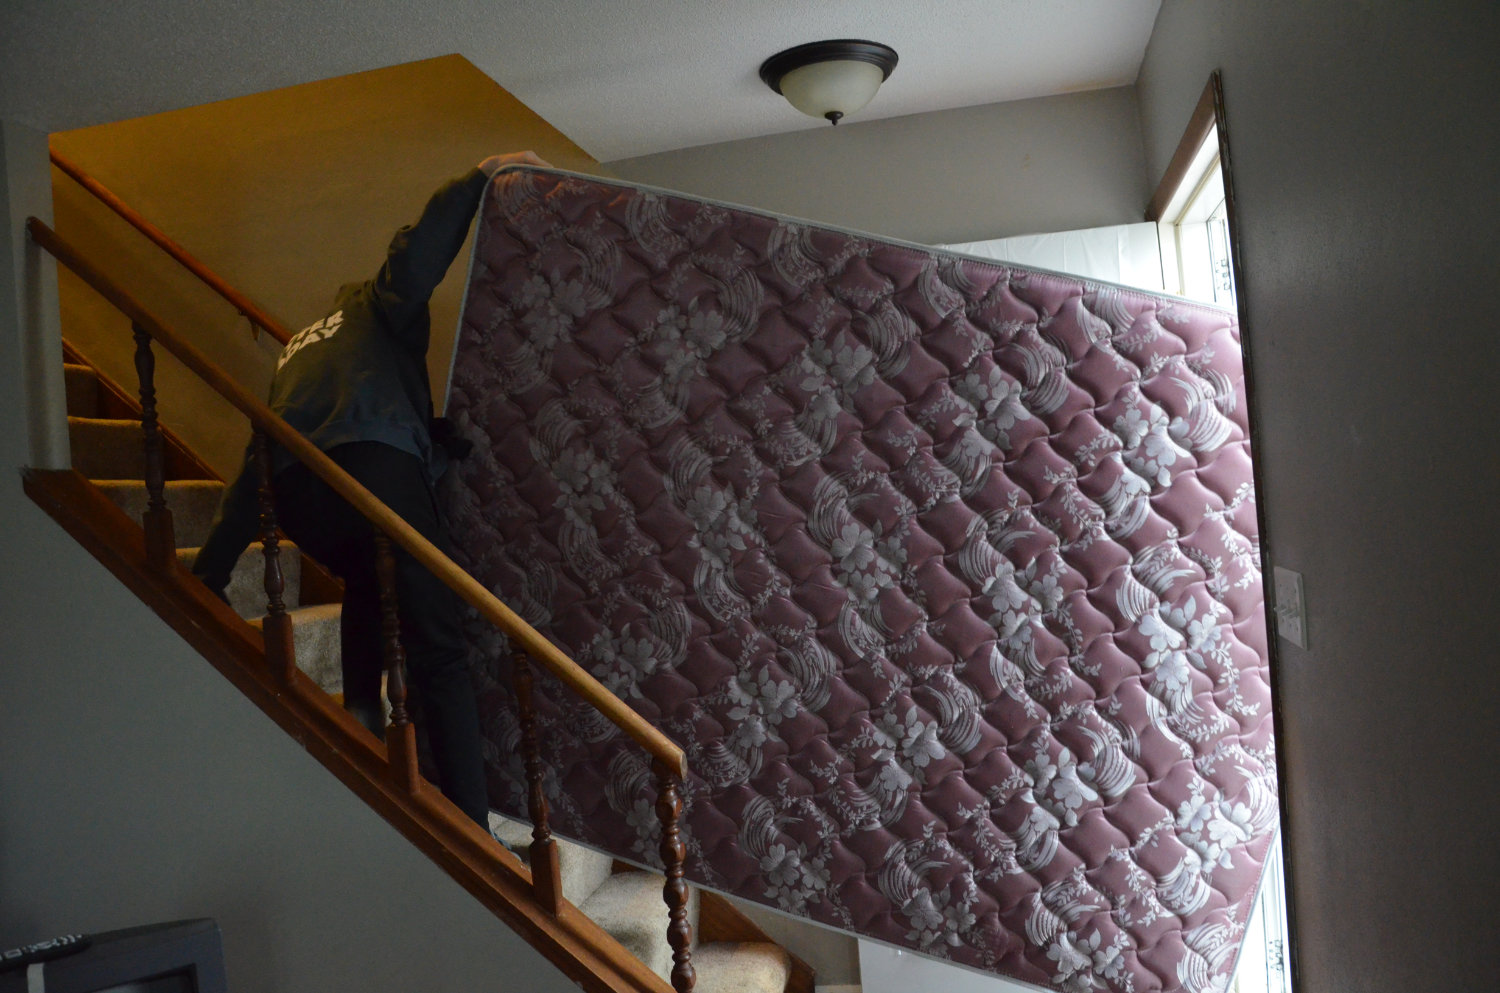 Mattress up the stairs 12:2:18.jpg